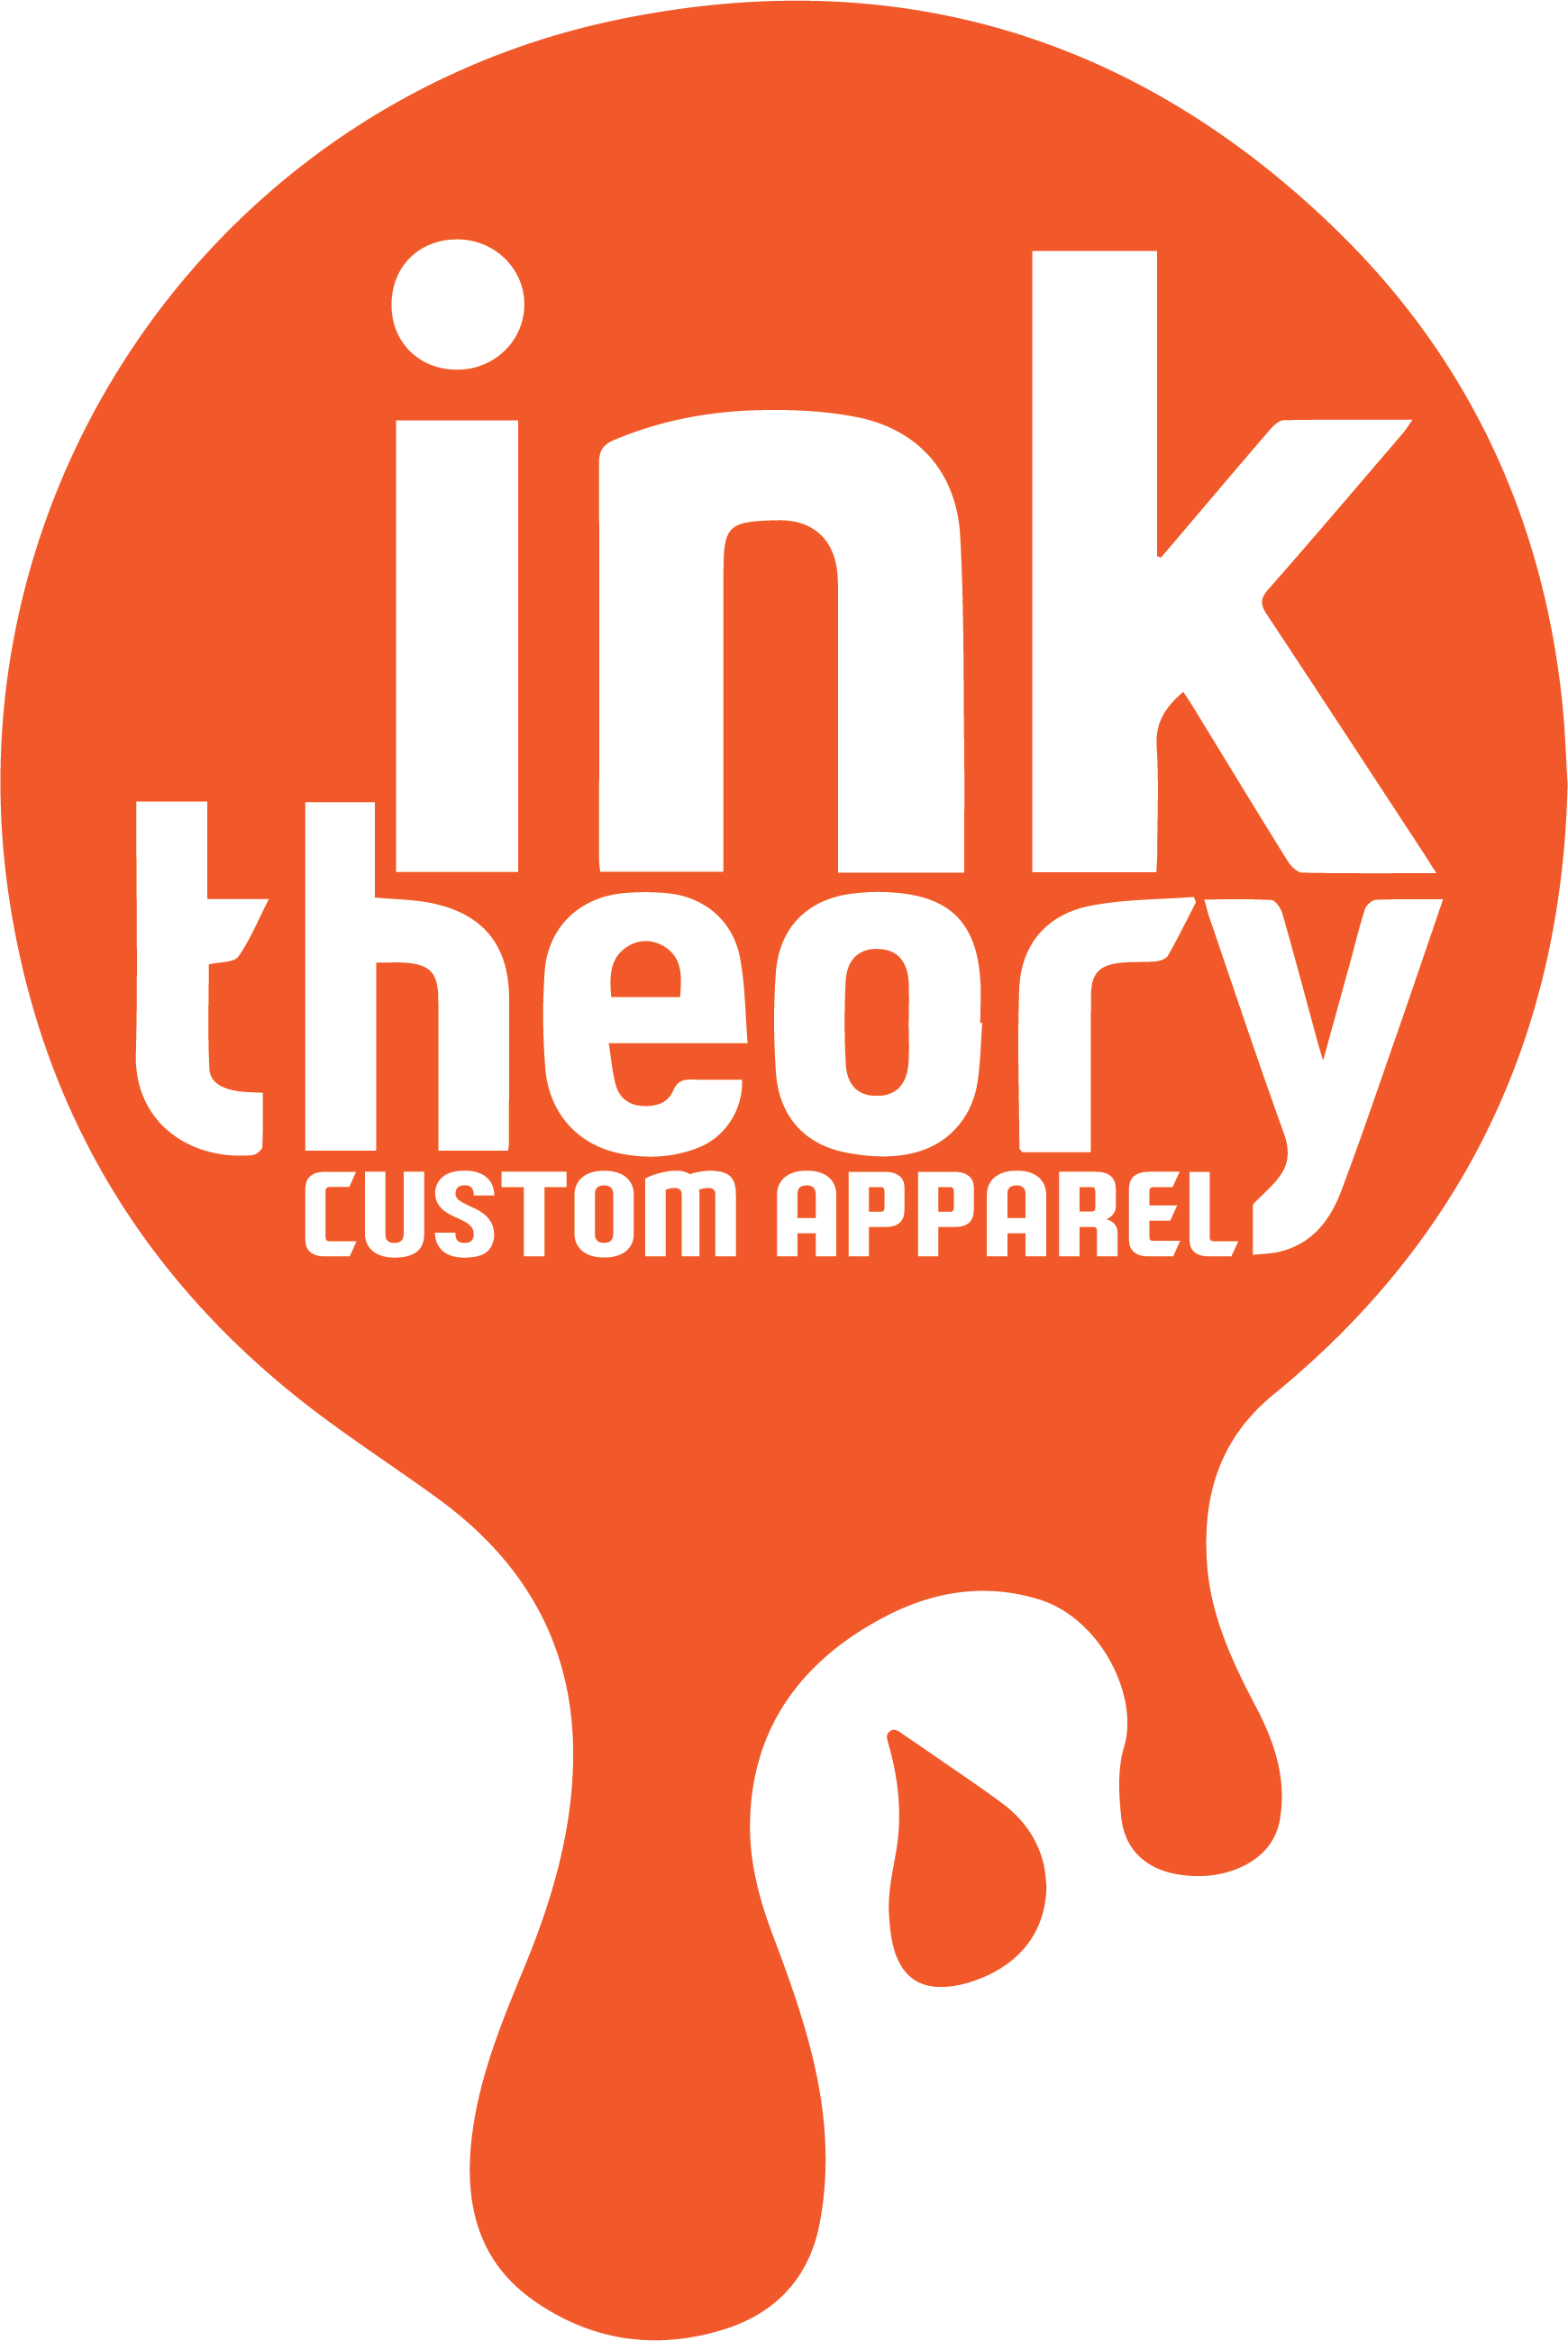 Our Official Shirts are provided by Ink Theory